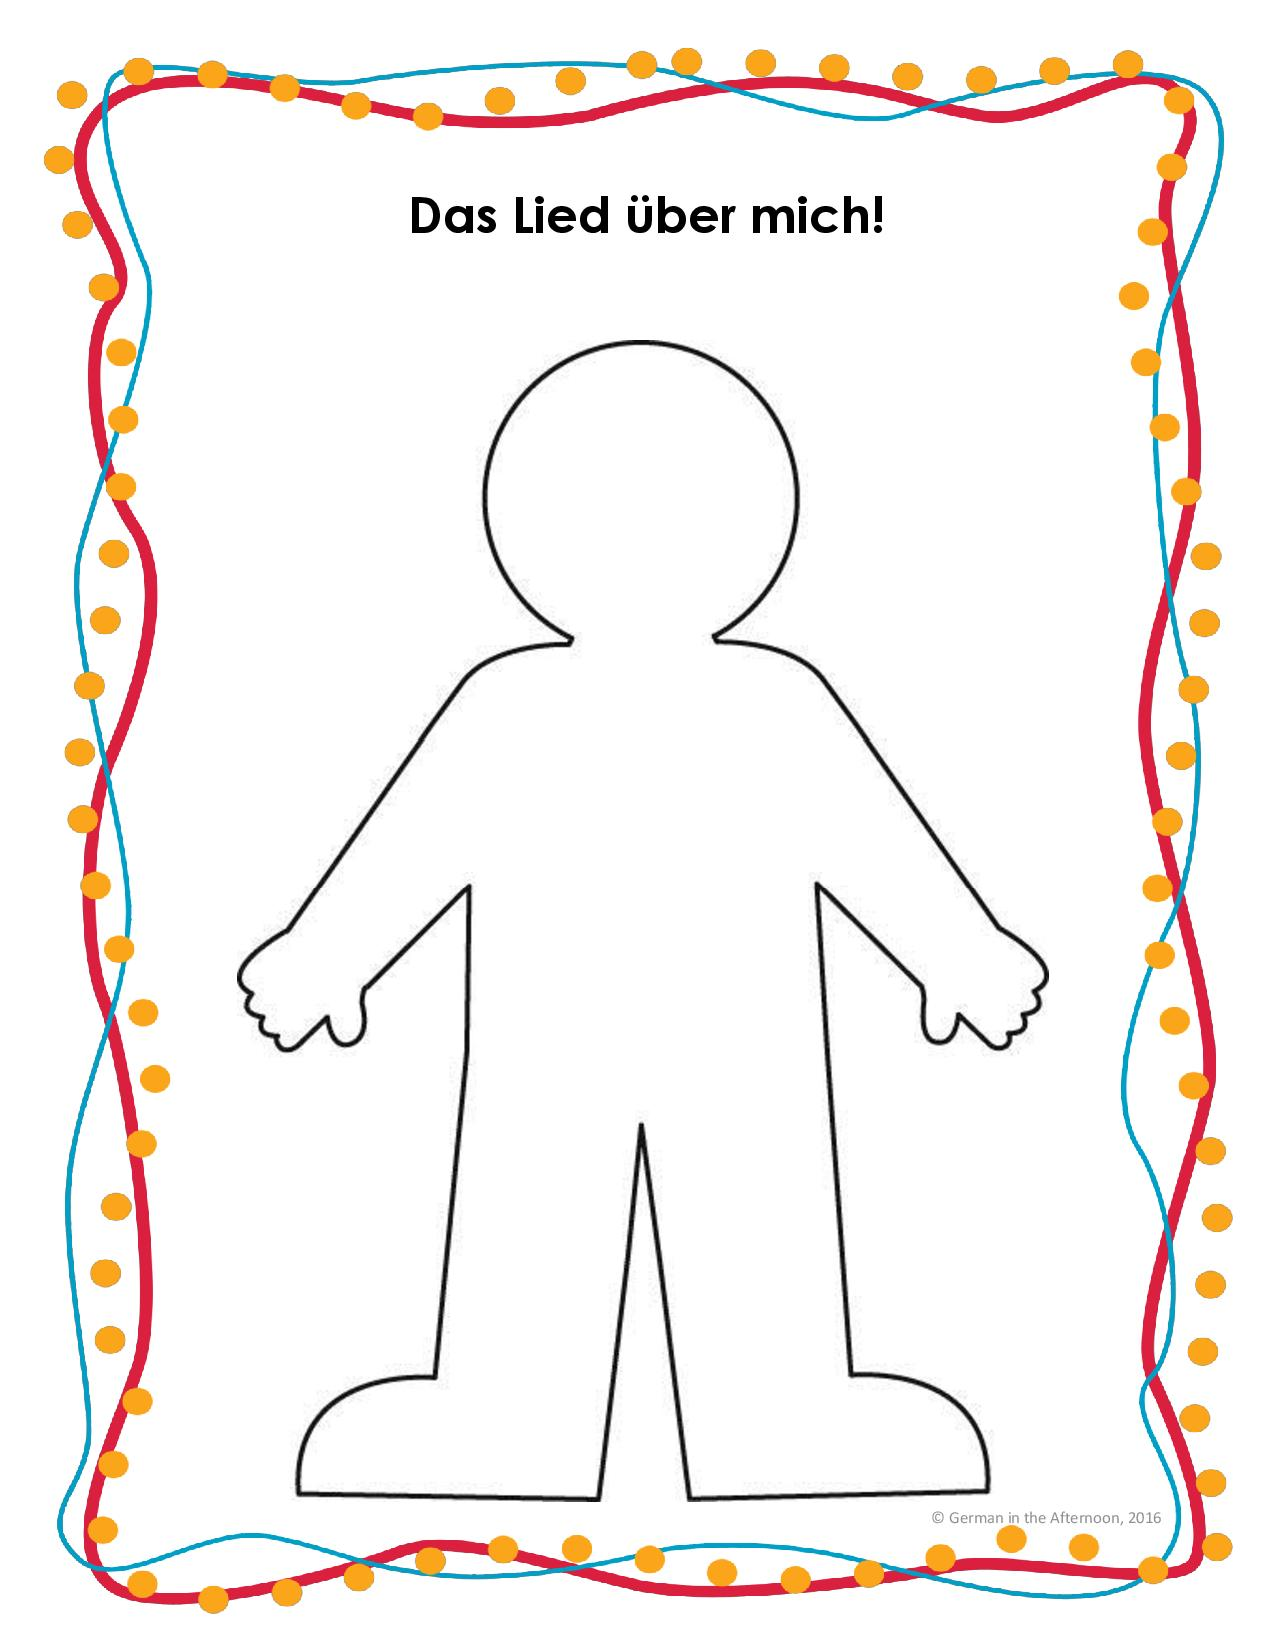 das-lied-uber-mich-gita-page-004 | German in the Afternoon Activities